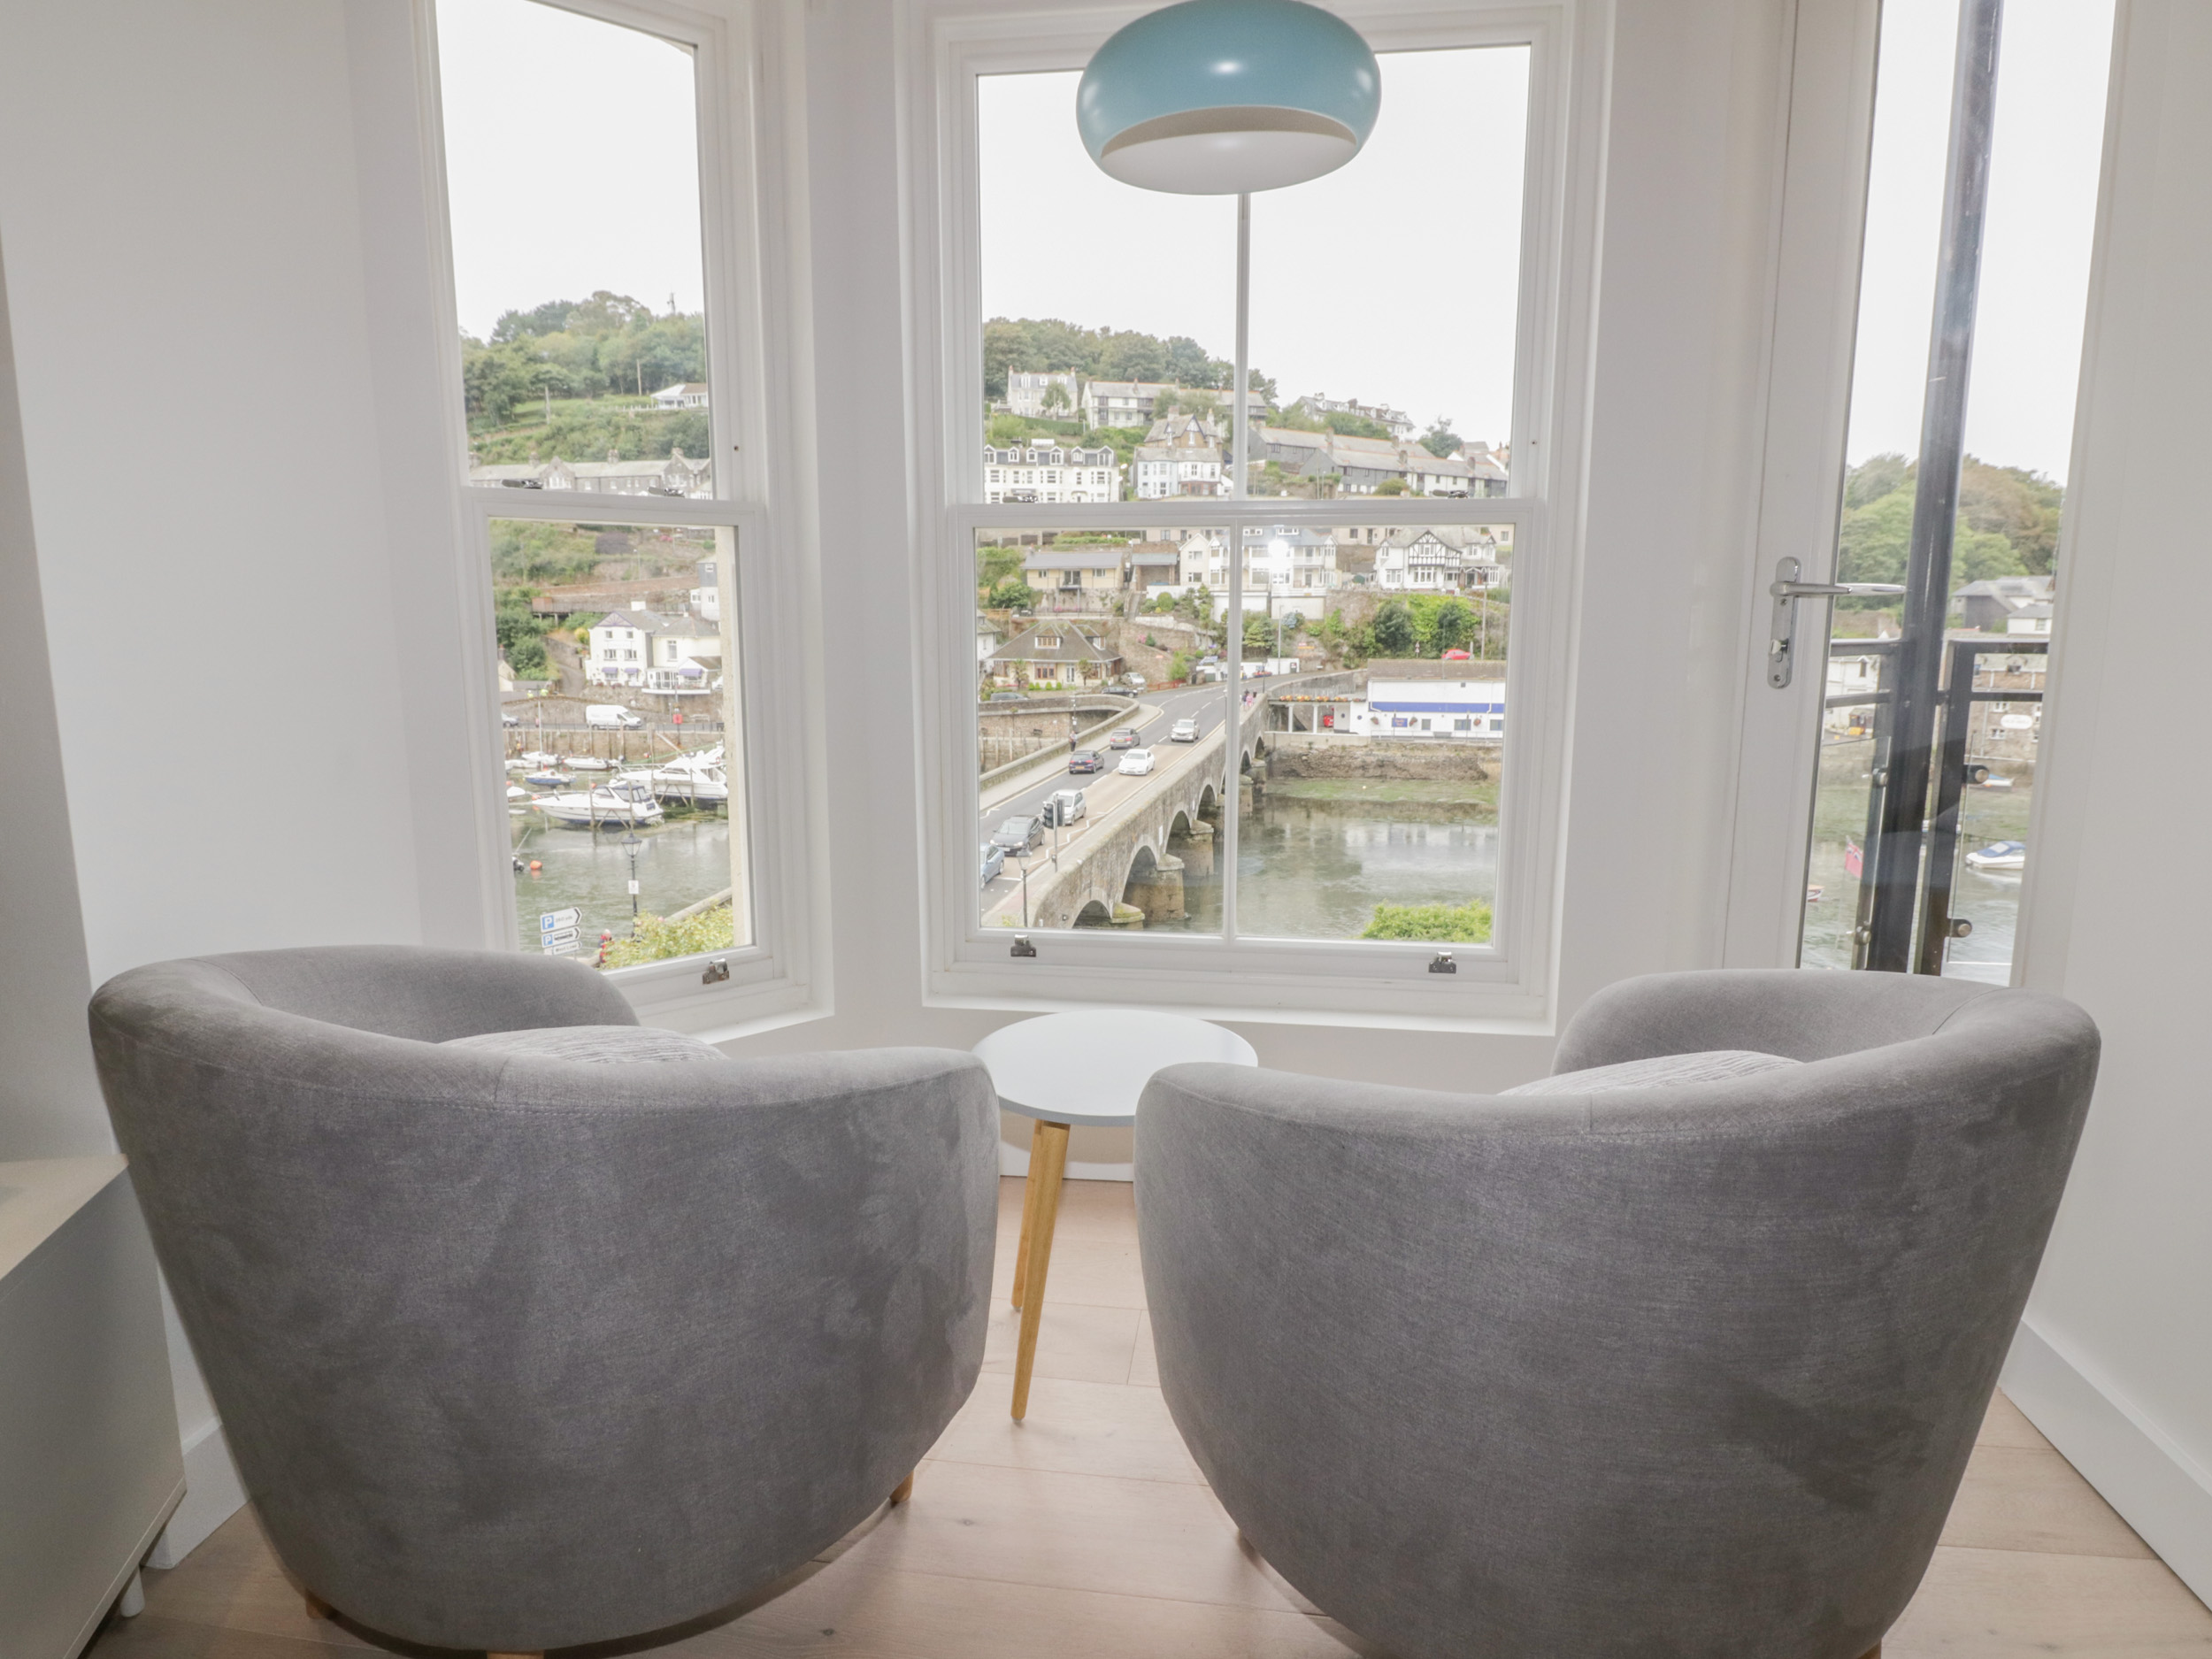 4 Belmont Apartment River View, West Looe, Cornwall